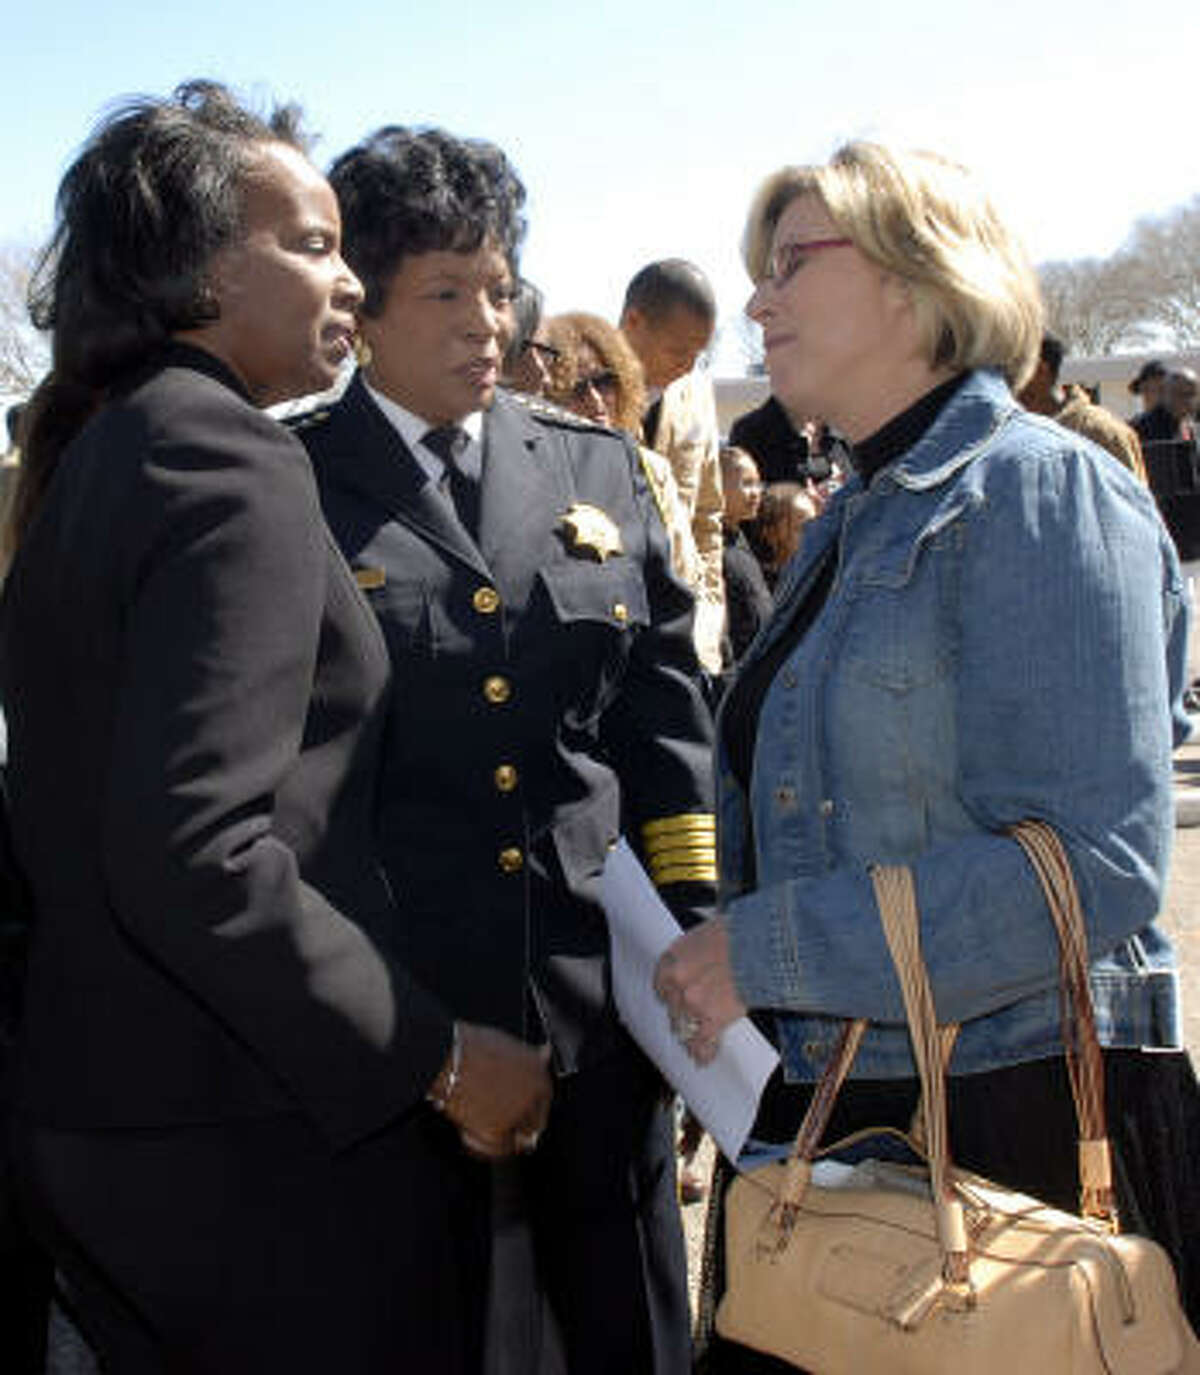 Precinct 7 Constable May Walker, center, and Cathy Hill, right, greet Annette Joubert, left, after the Flag of Honor ceremony at the Precinct 7 Headquarters on Feb. 13.